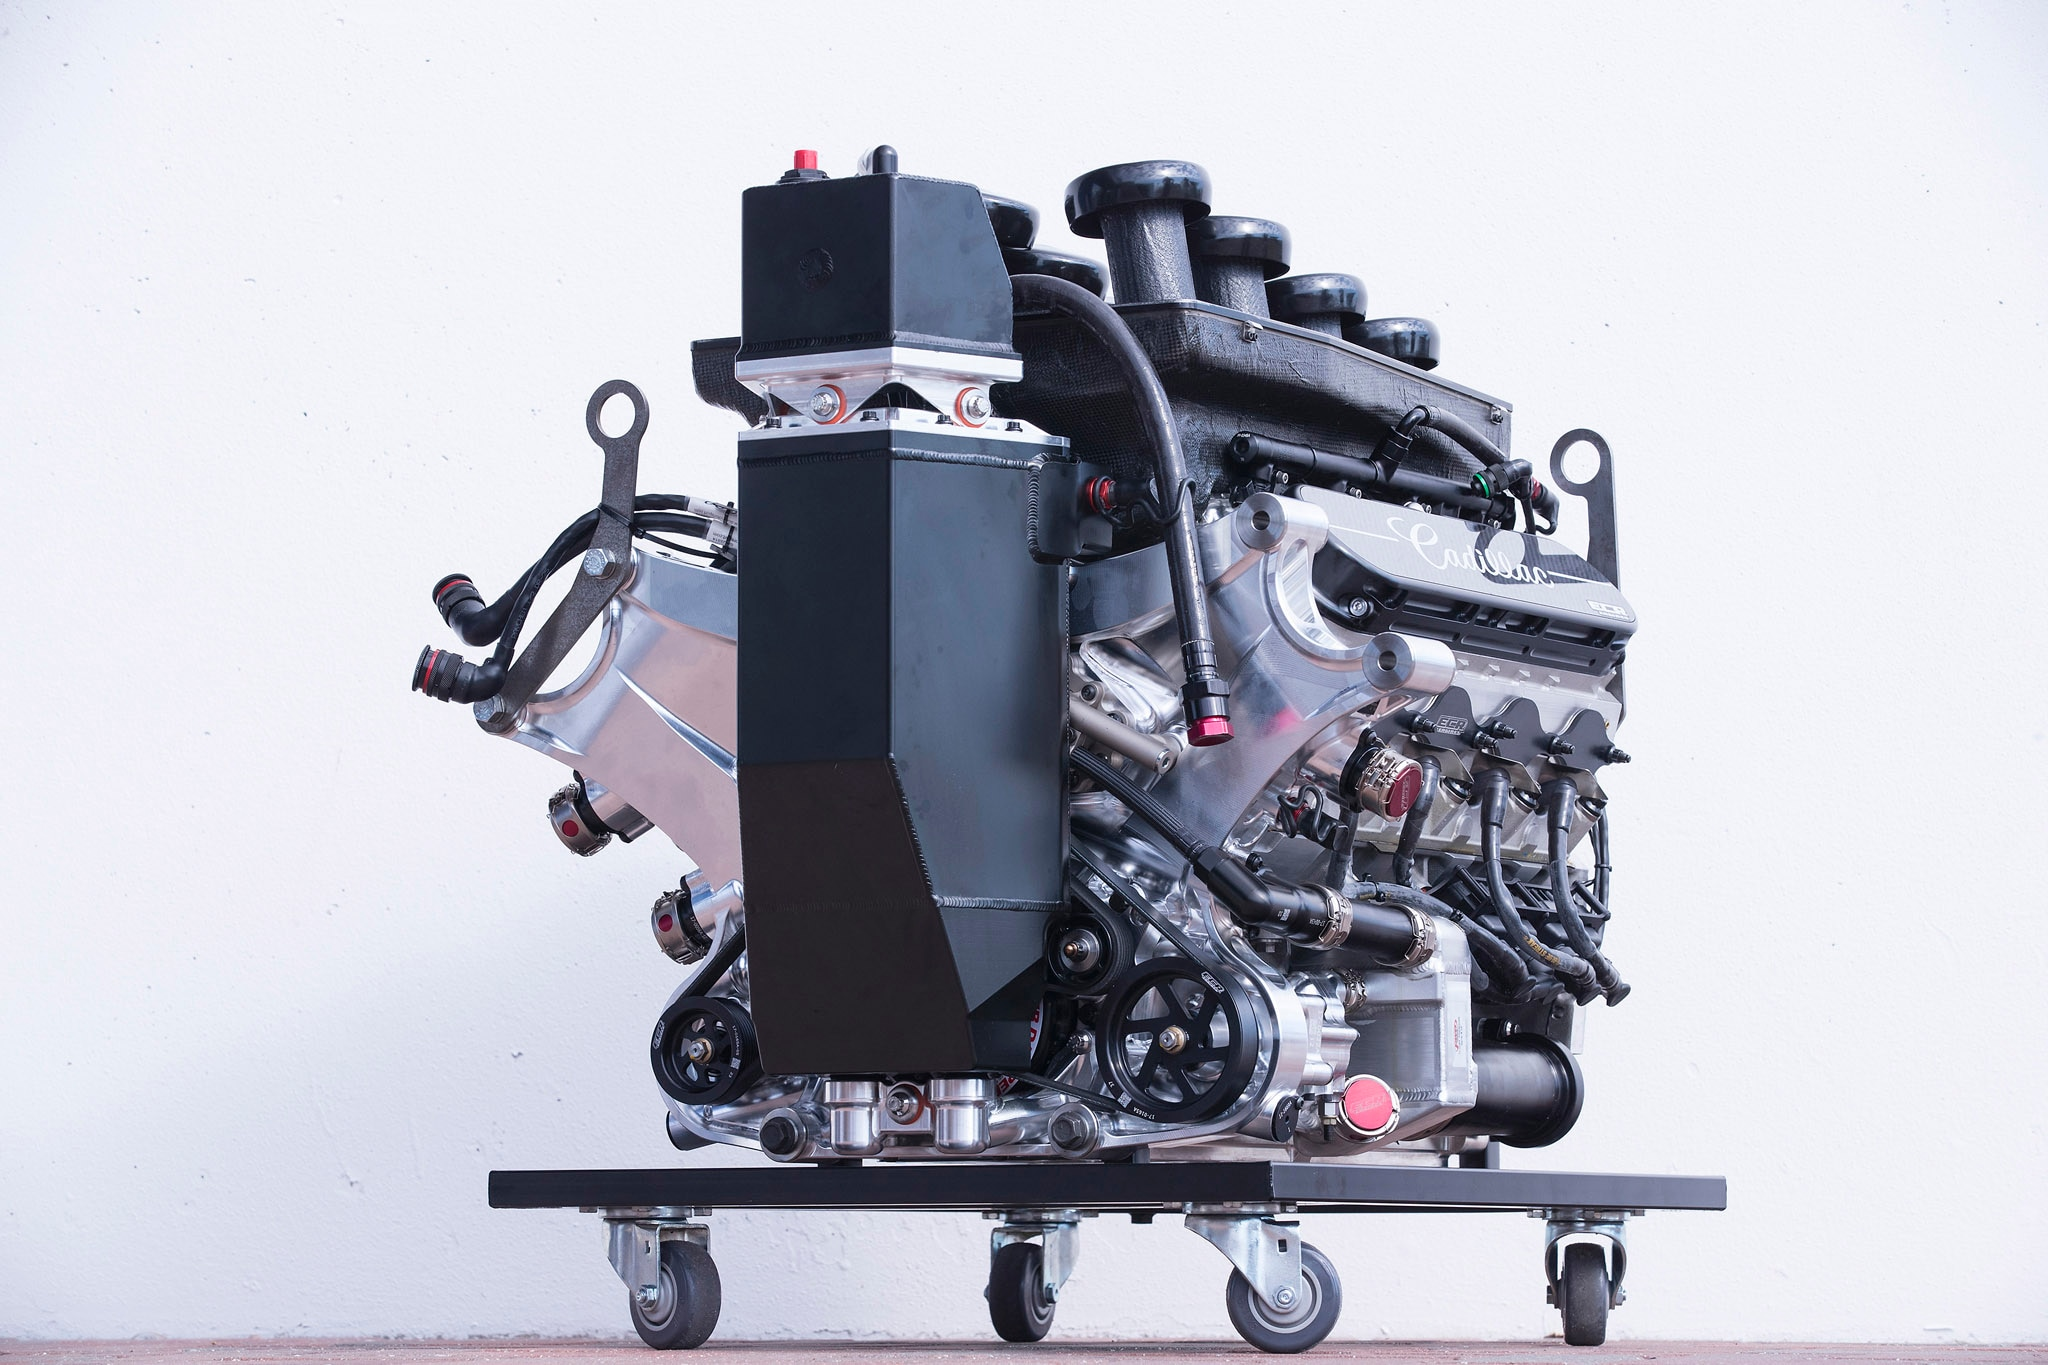 cadillac mar engines next twin turbo us by lgw content media powertrain en led v pages detail news gen